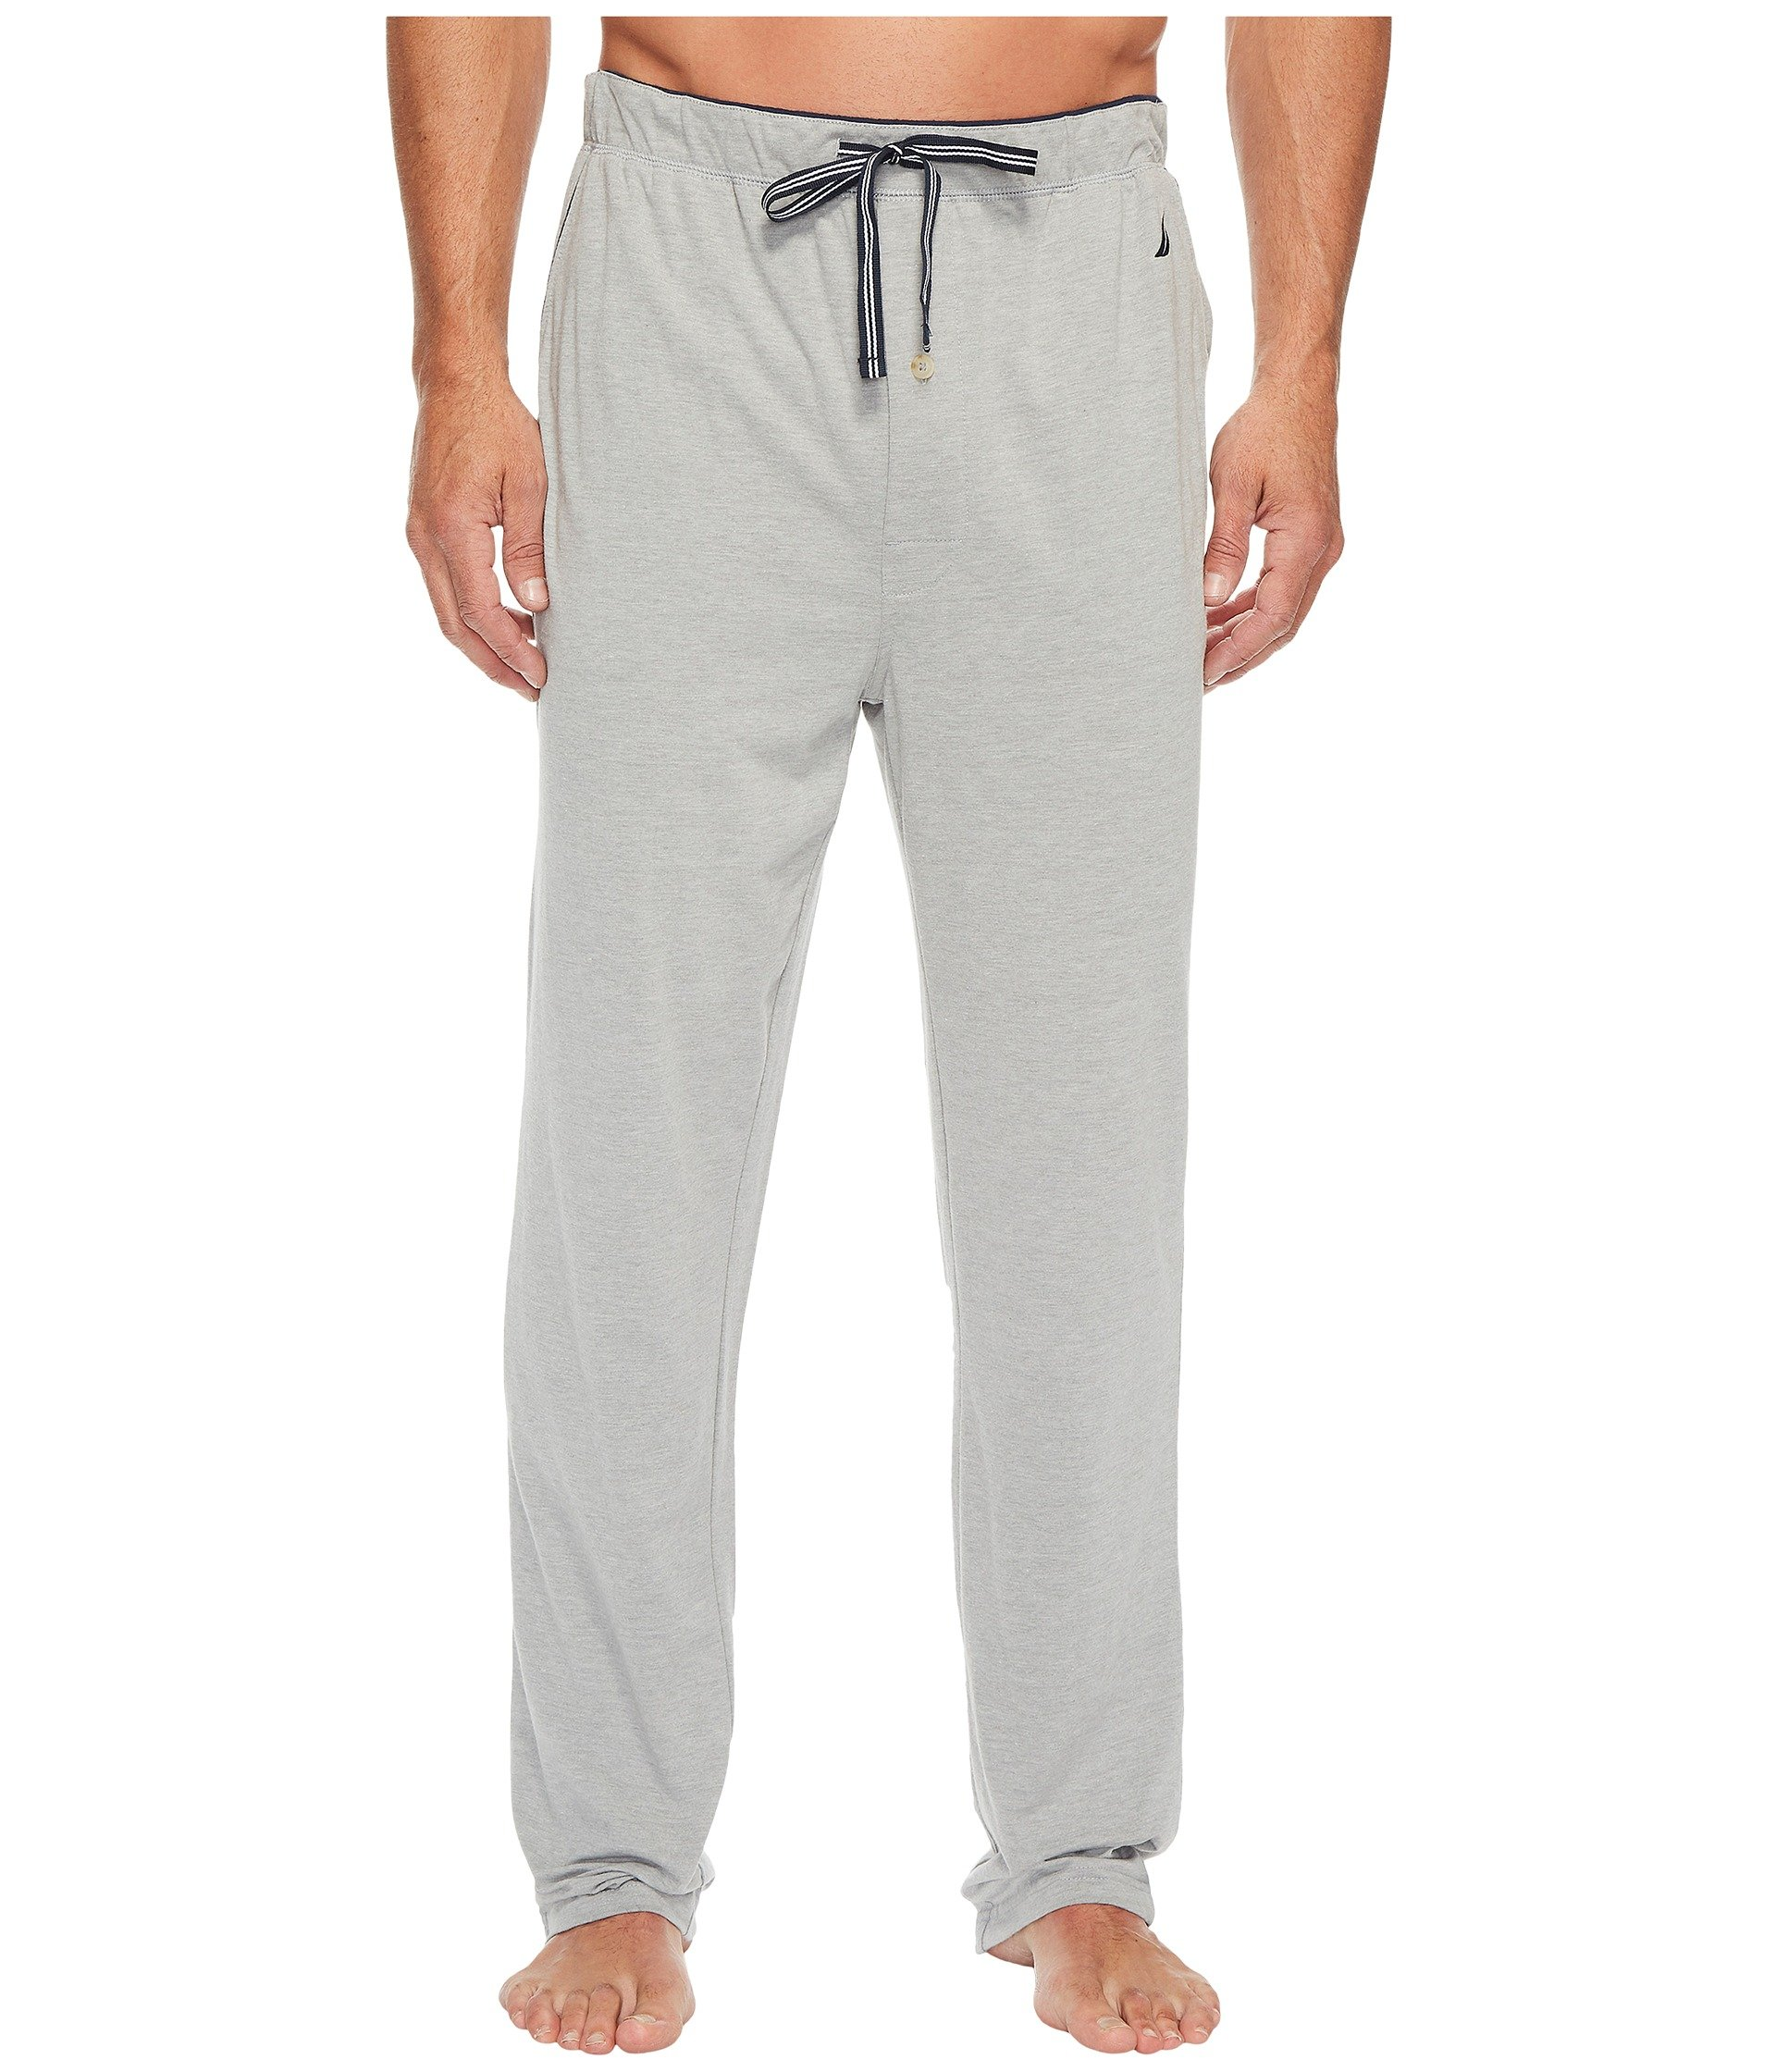 Knit Sleep Grey Heather Nautica Pants Hq6xwUU